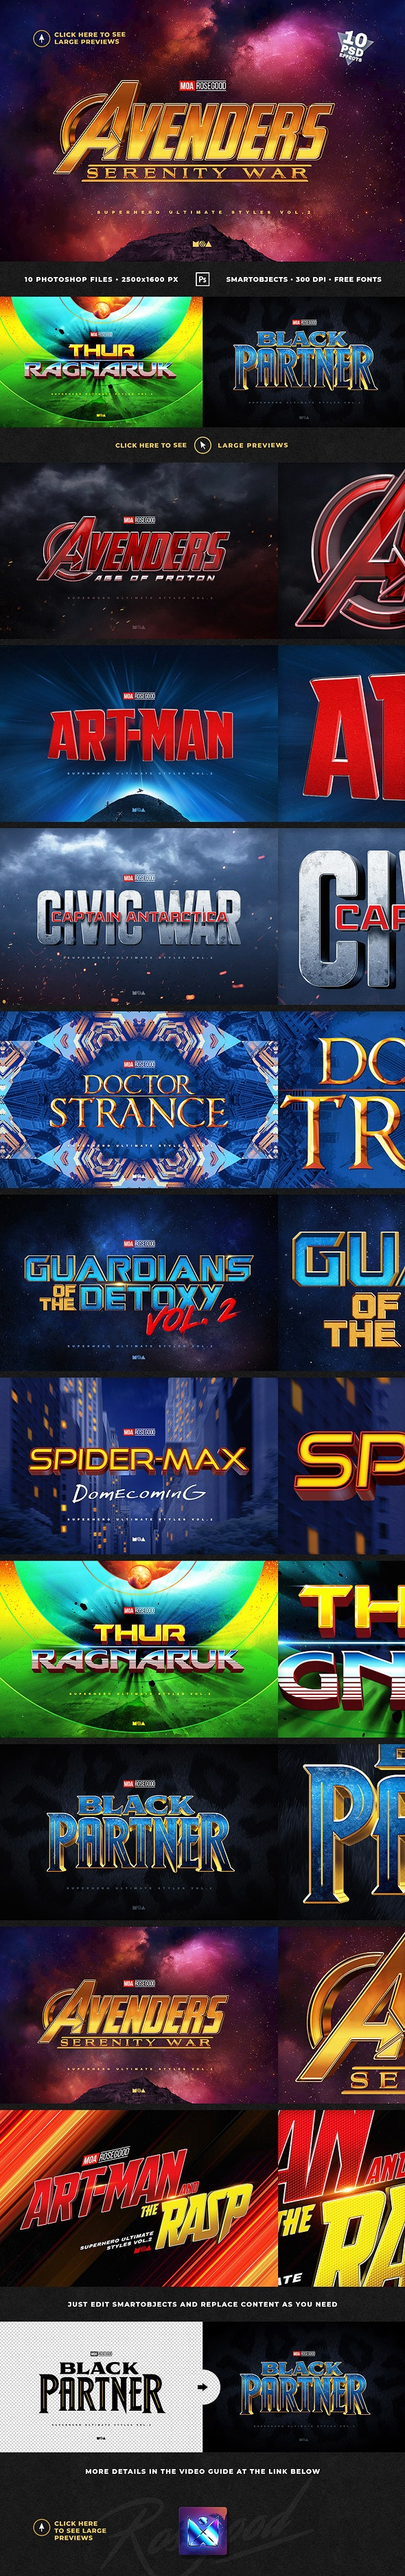 Superhero Ultimate Text Effects vol.2 - Text Effects Actions